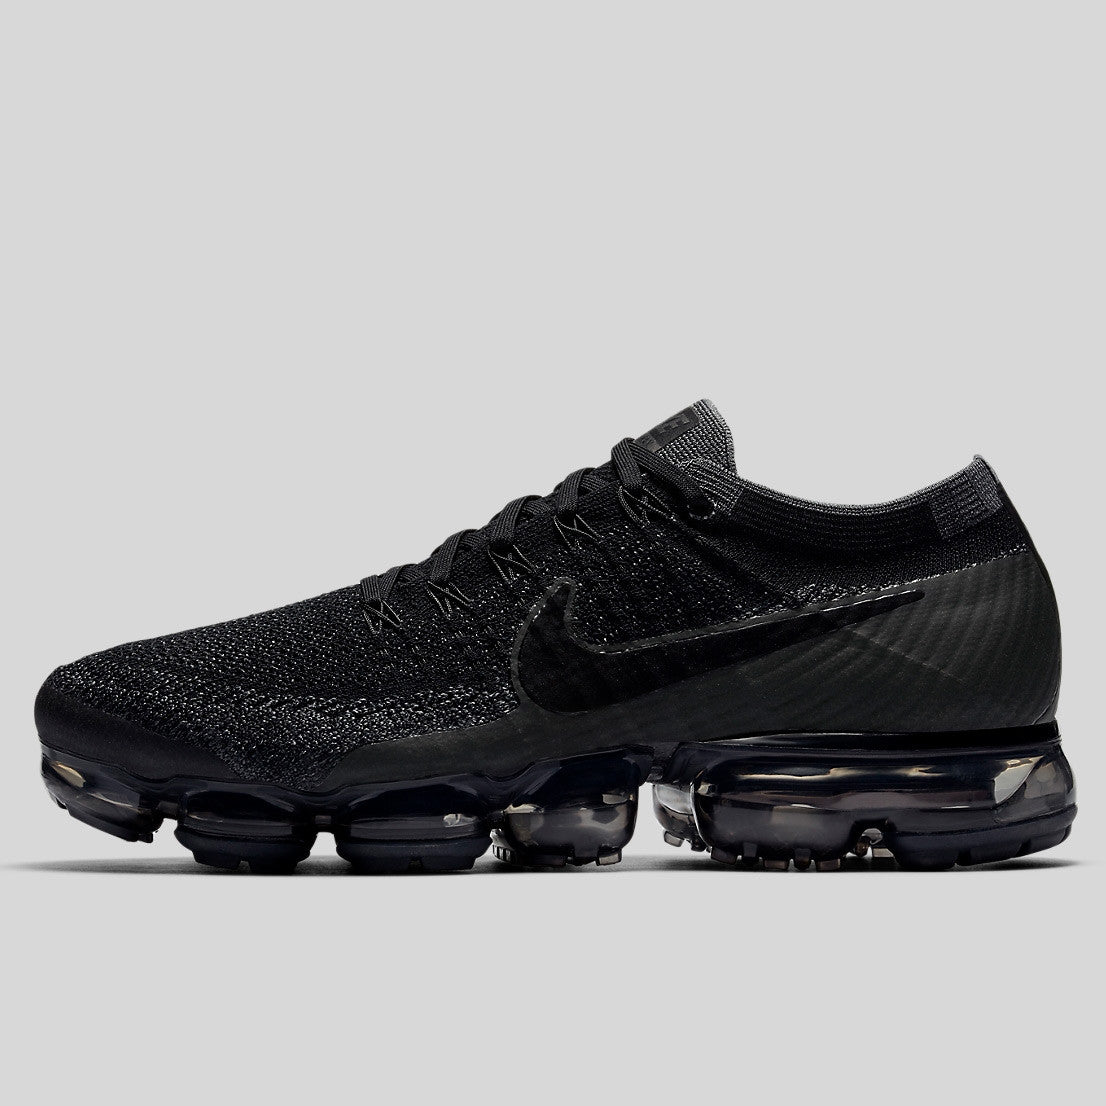 4b23e6f4924b2 Nike Air Vapormax Flyknit Triple Black (849558-007)